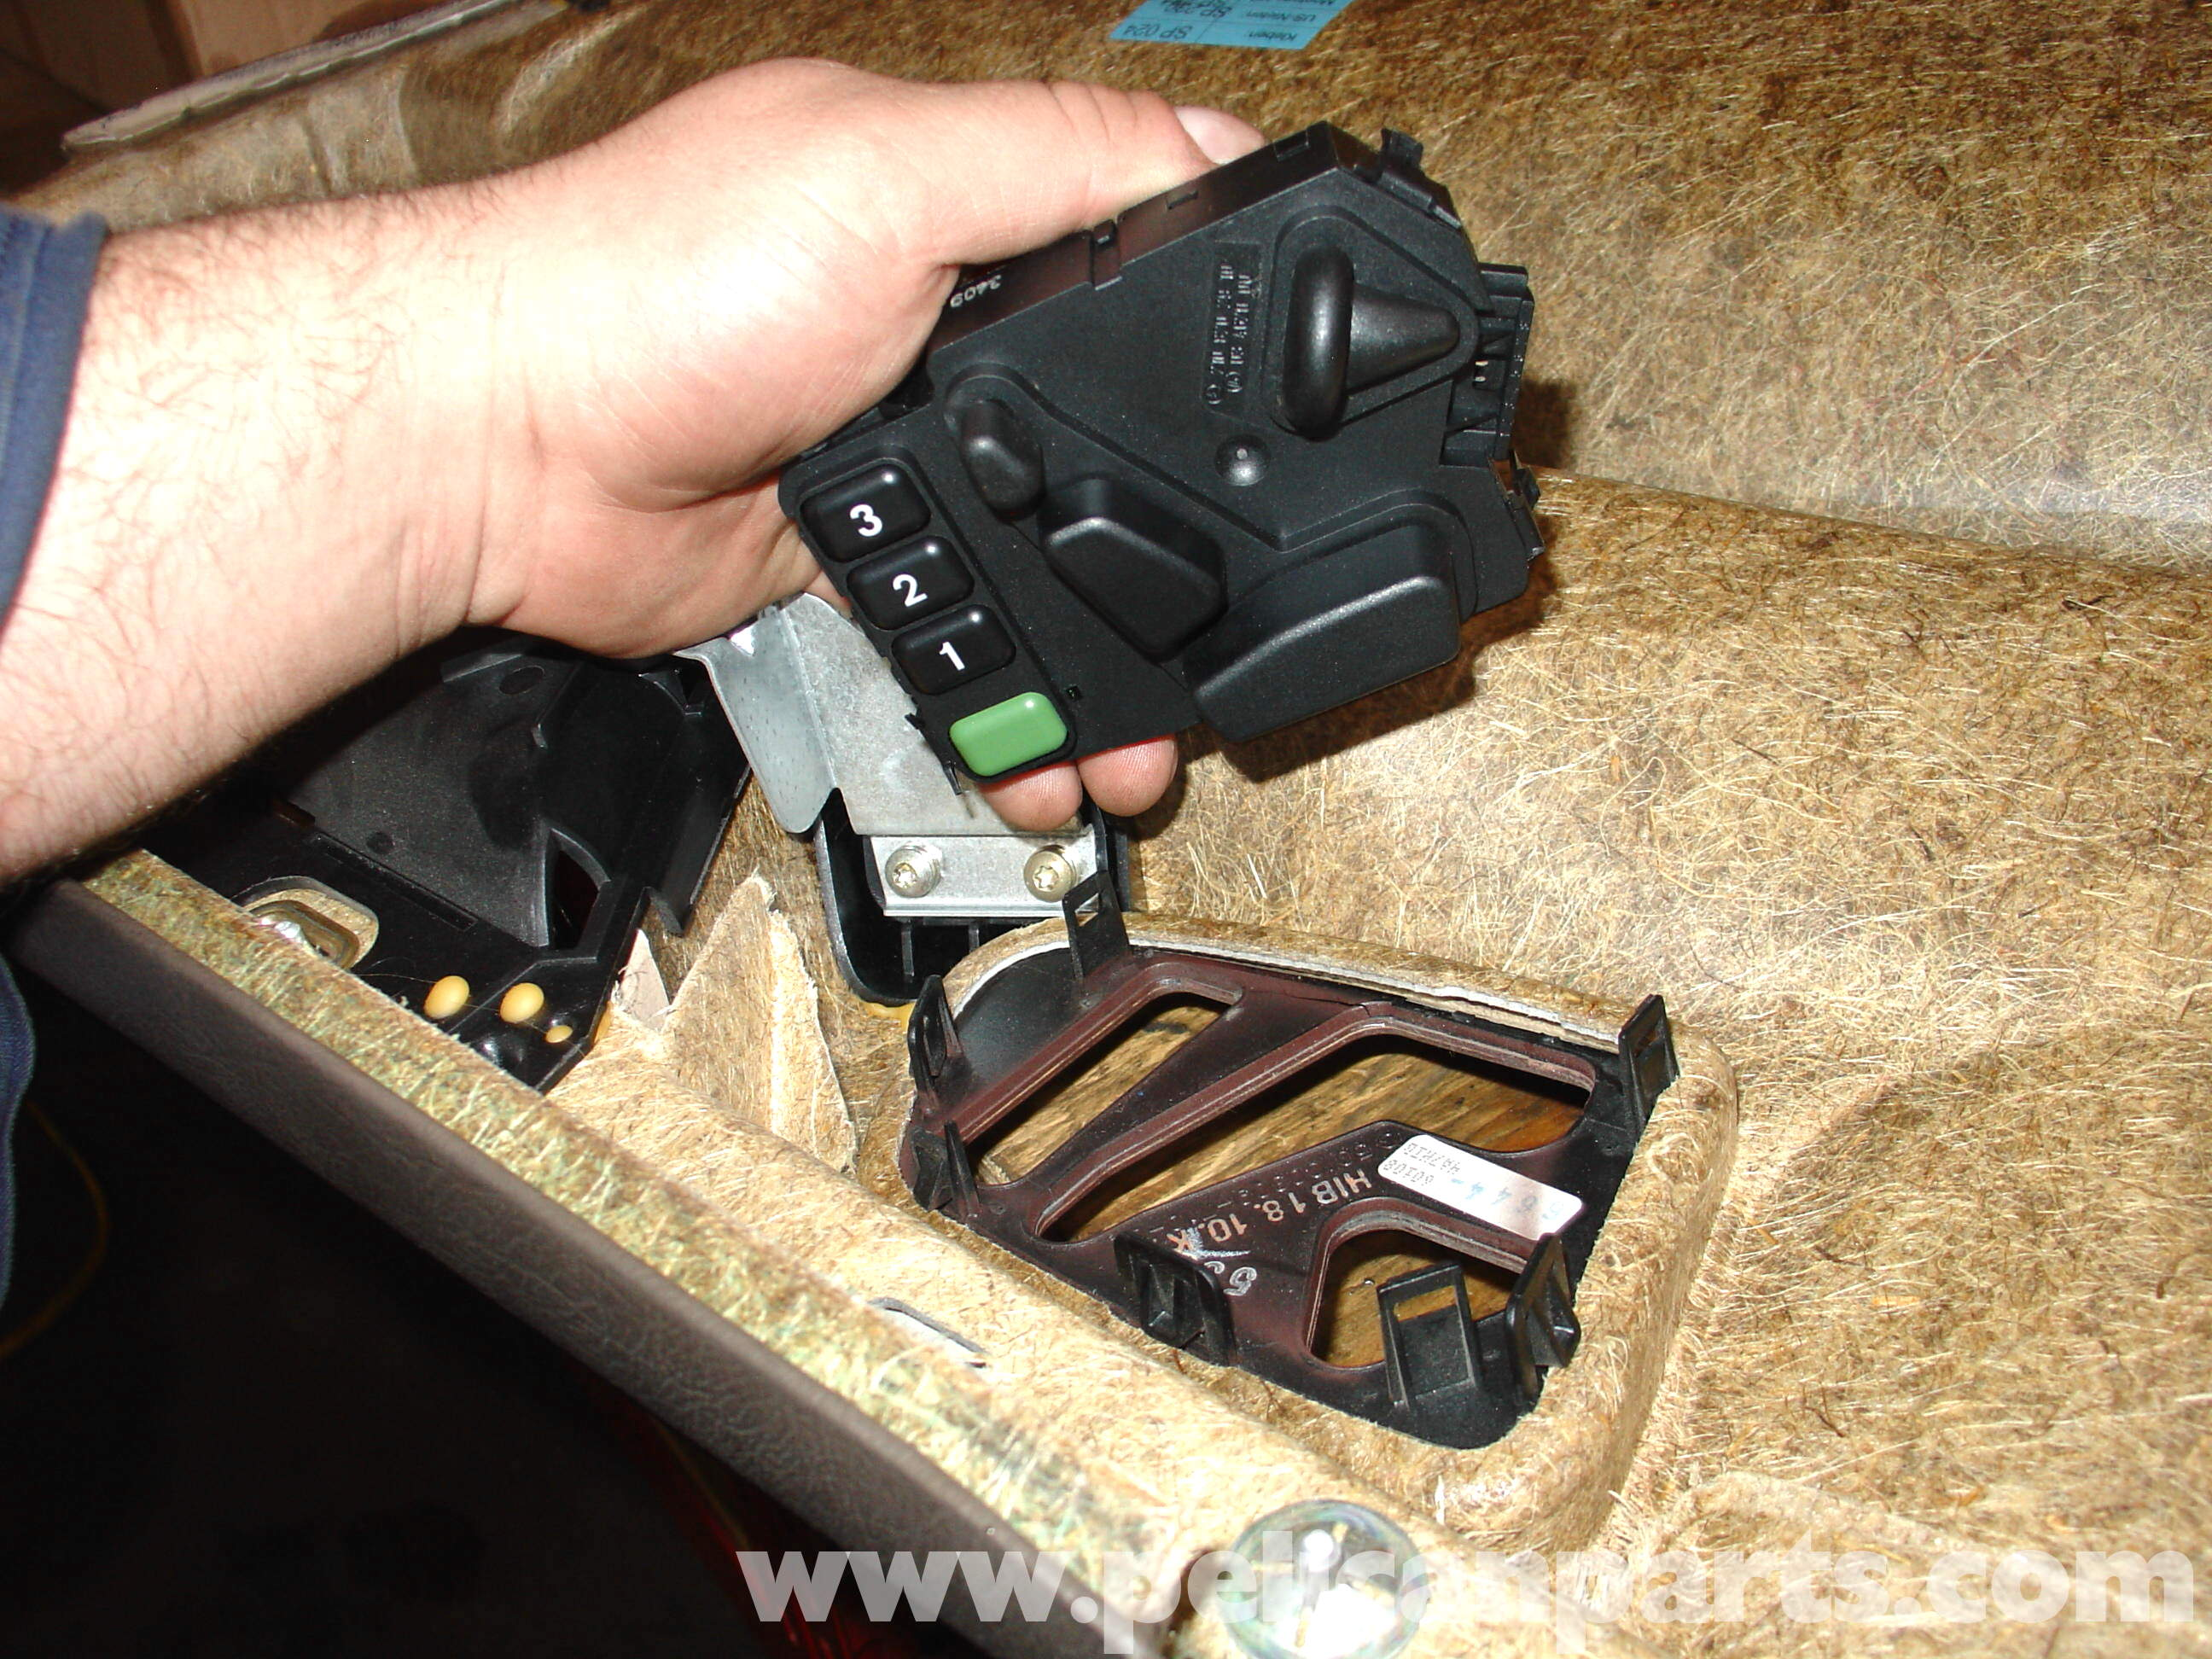 seat adjustment switch repair and replacement